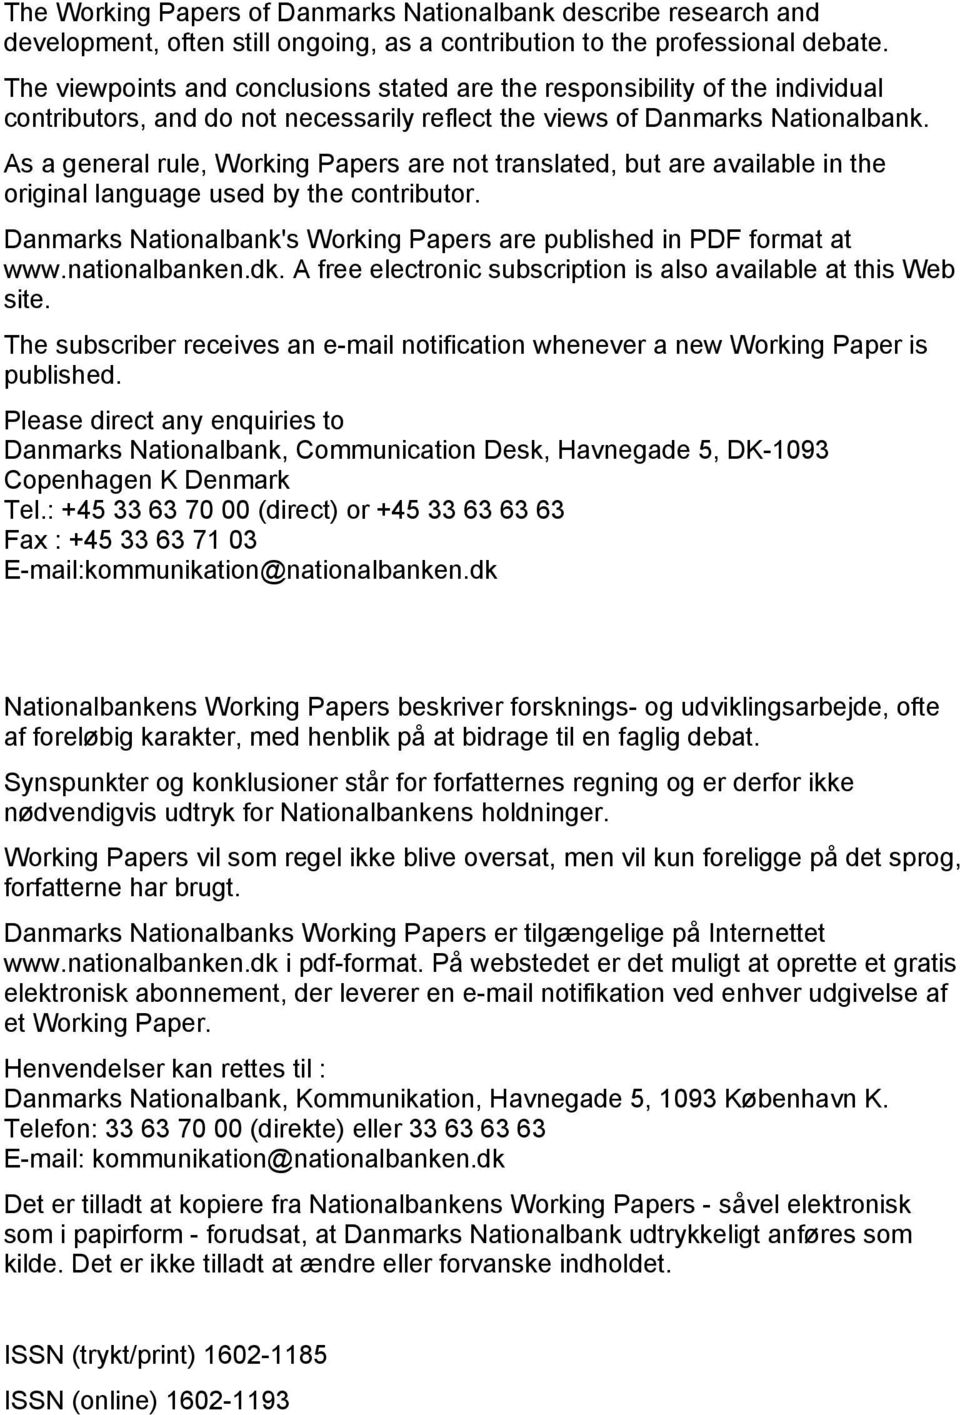 As a general rule, Working Papers are not translated, but are available in the original language used by the contributor. Danmarks Nationalbank's Working Papers are published in PDF format at www.